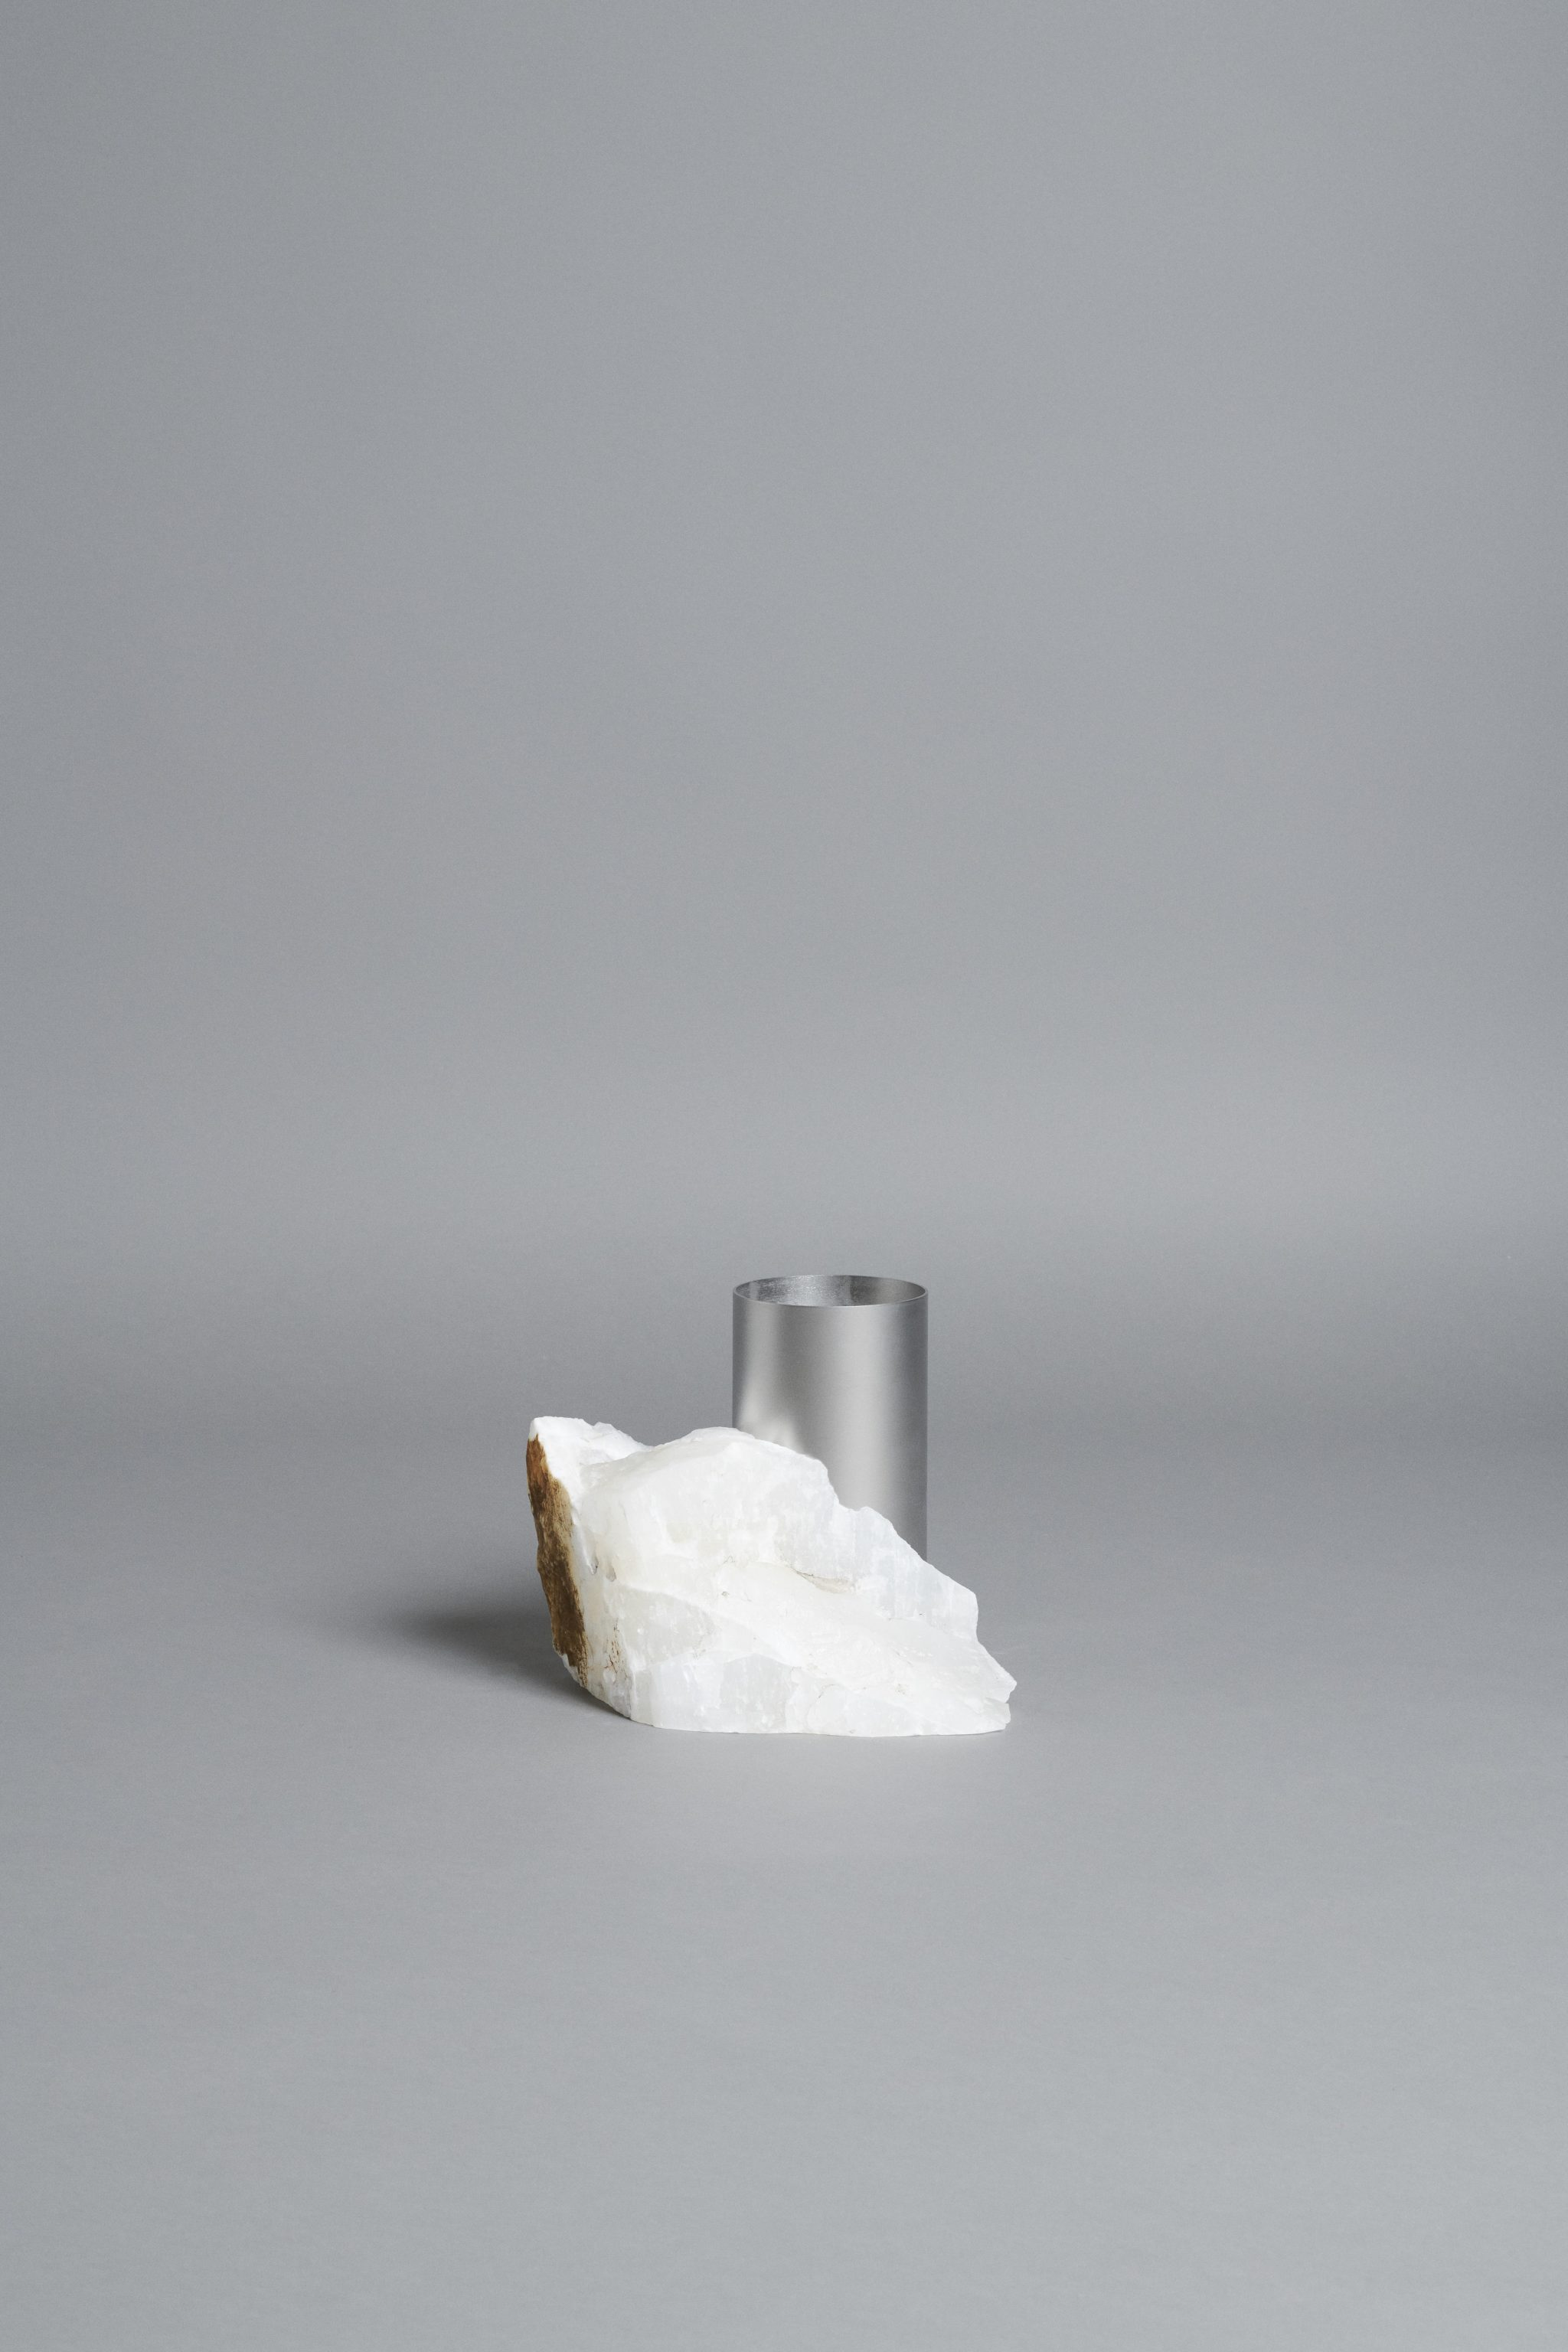 Bloc Studios x Tableau, Minimal white marble and metal vase